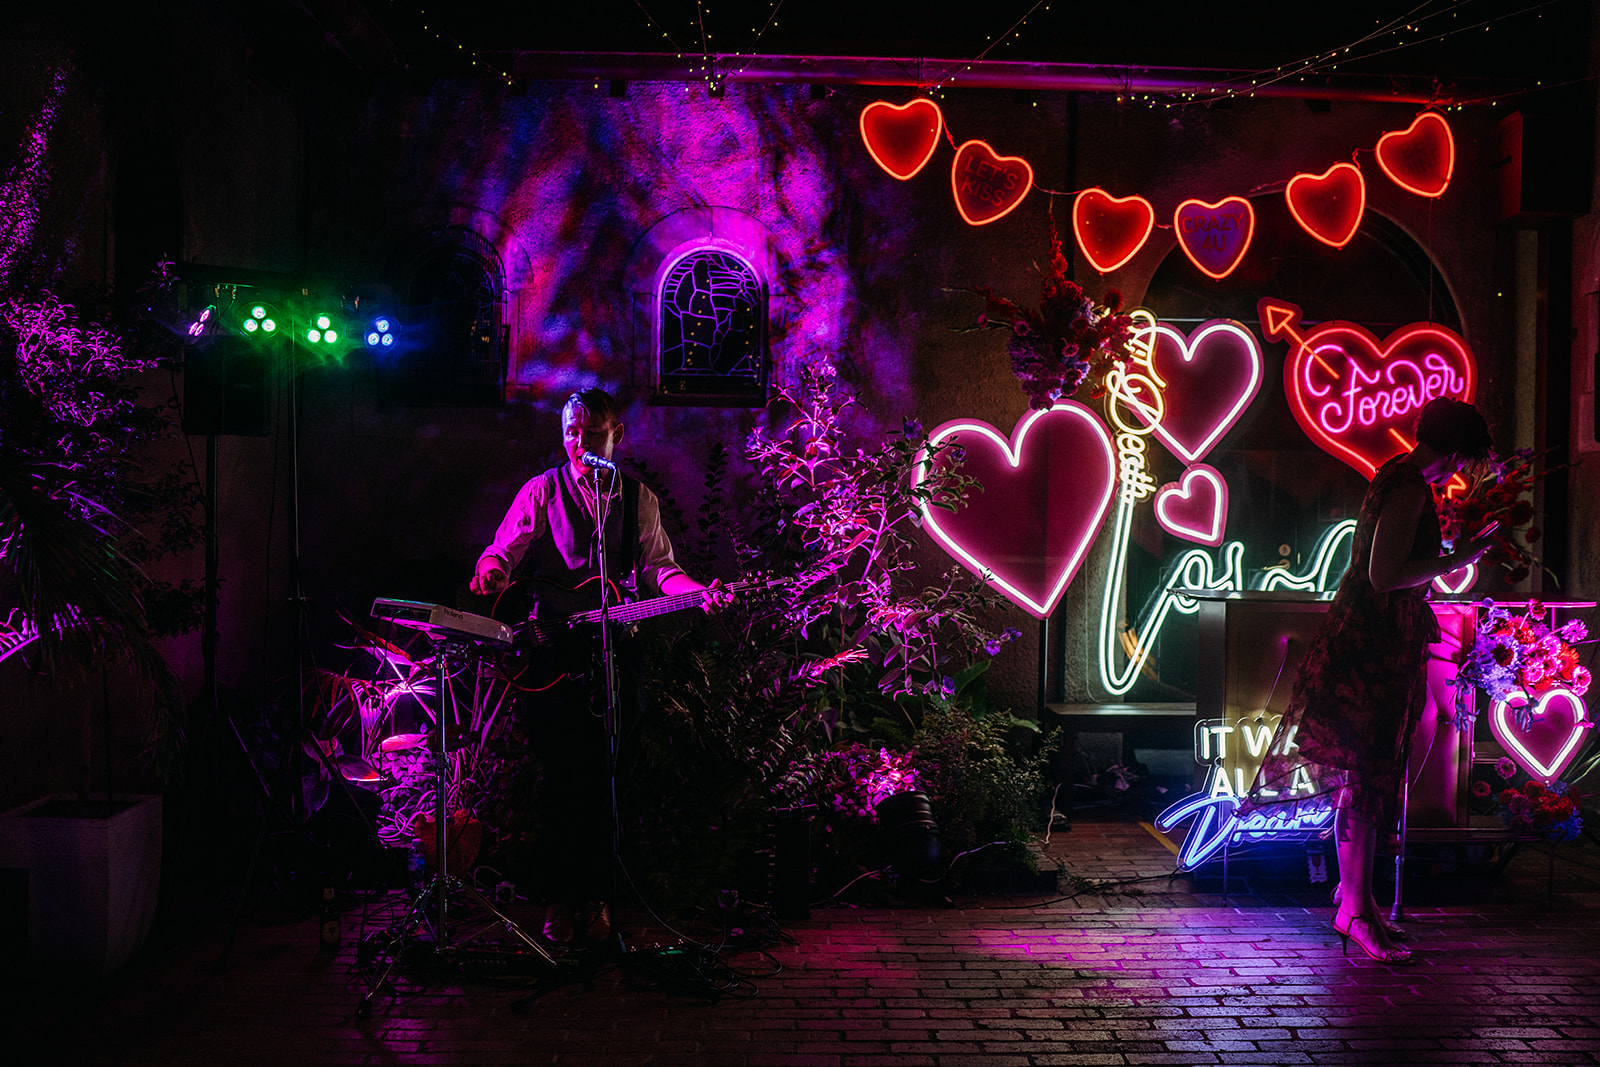 Neon sign soy cowboy themed wedding